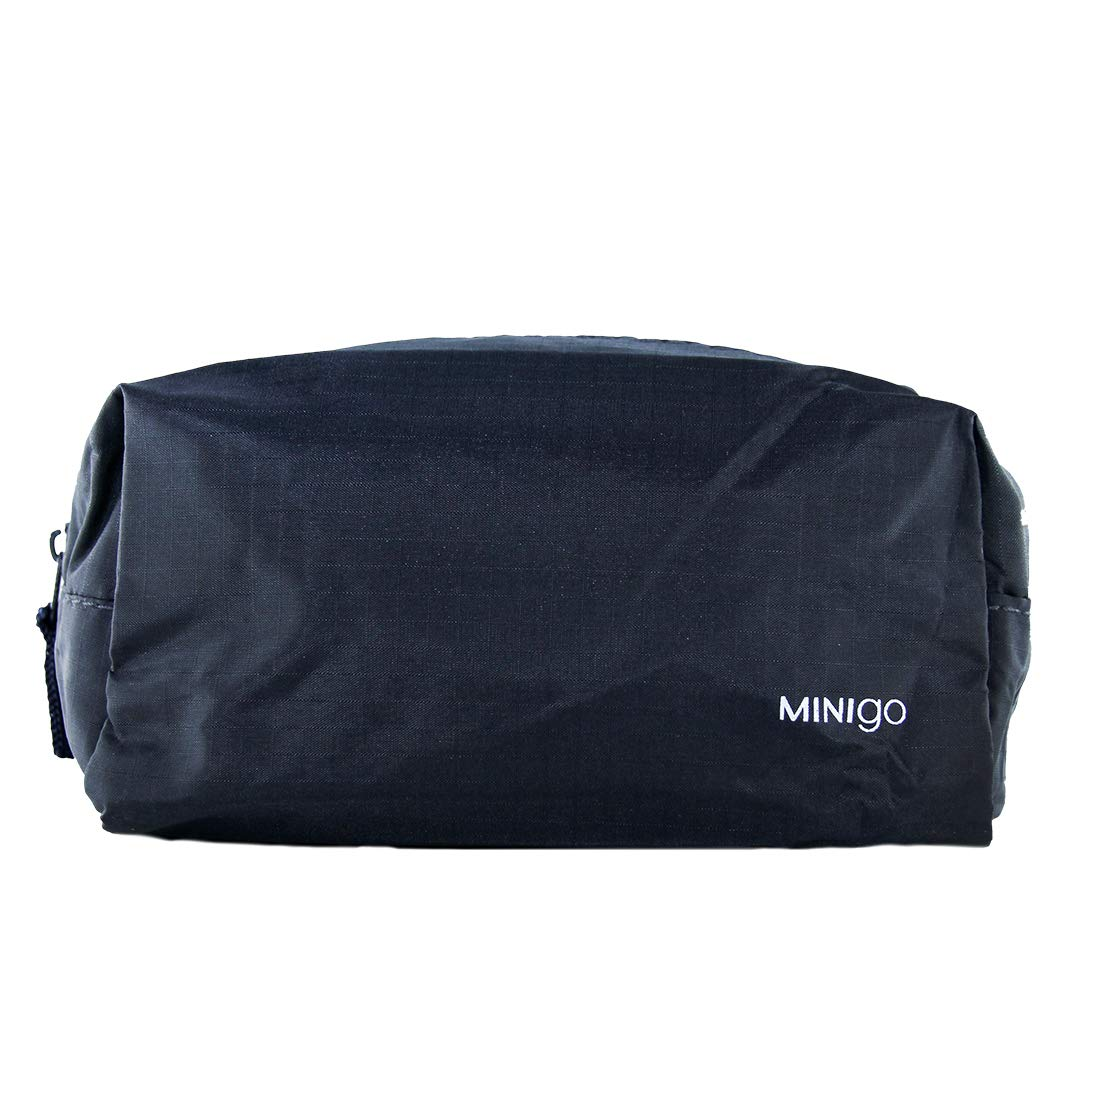 MINISO Max 60% OFF Minigo Cosmetic Bag Foldable Makeup free Pouch for Mult Womens